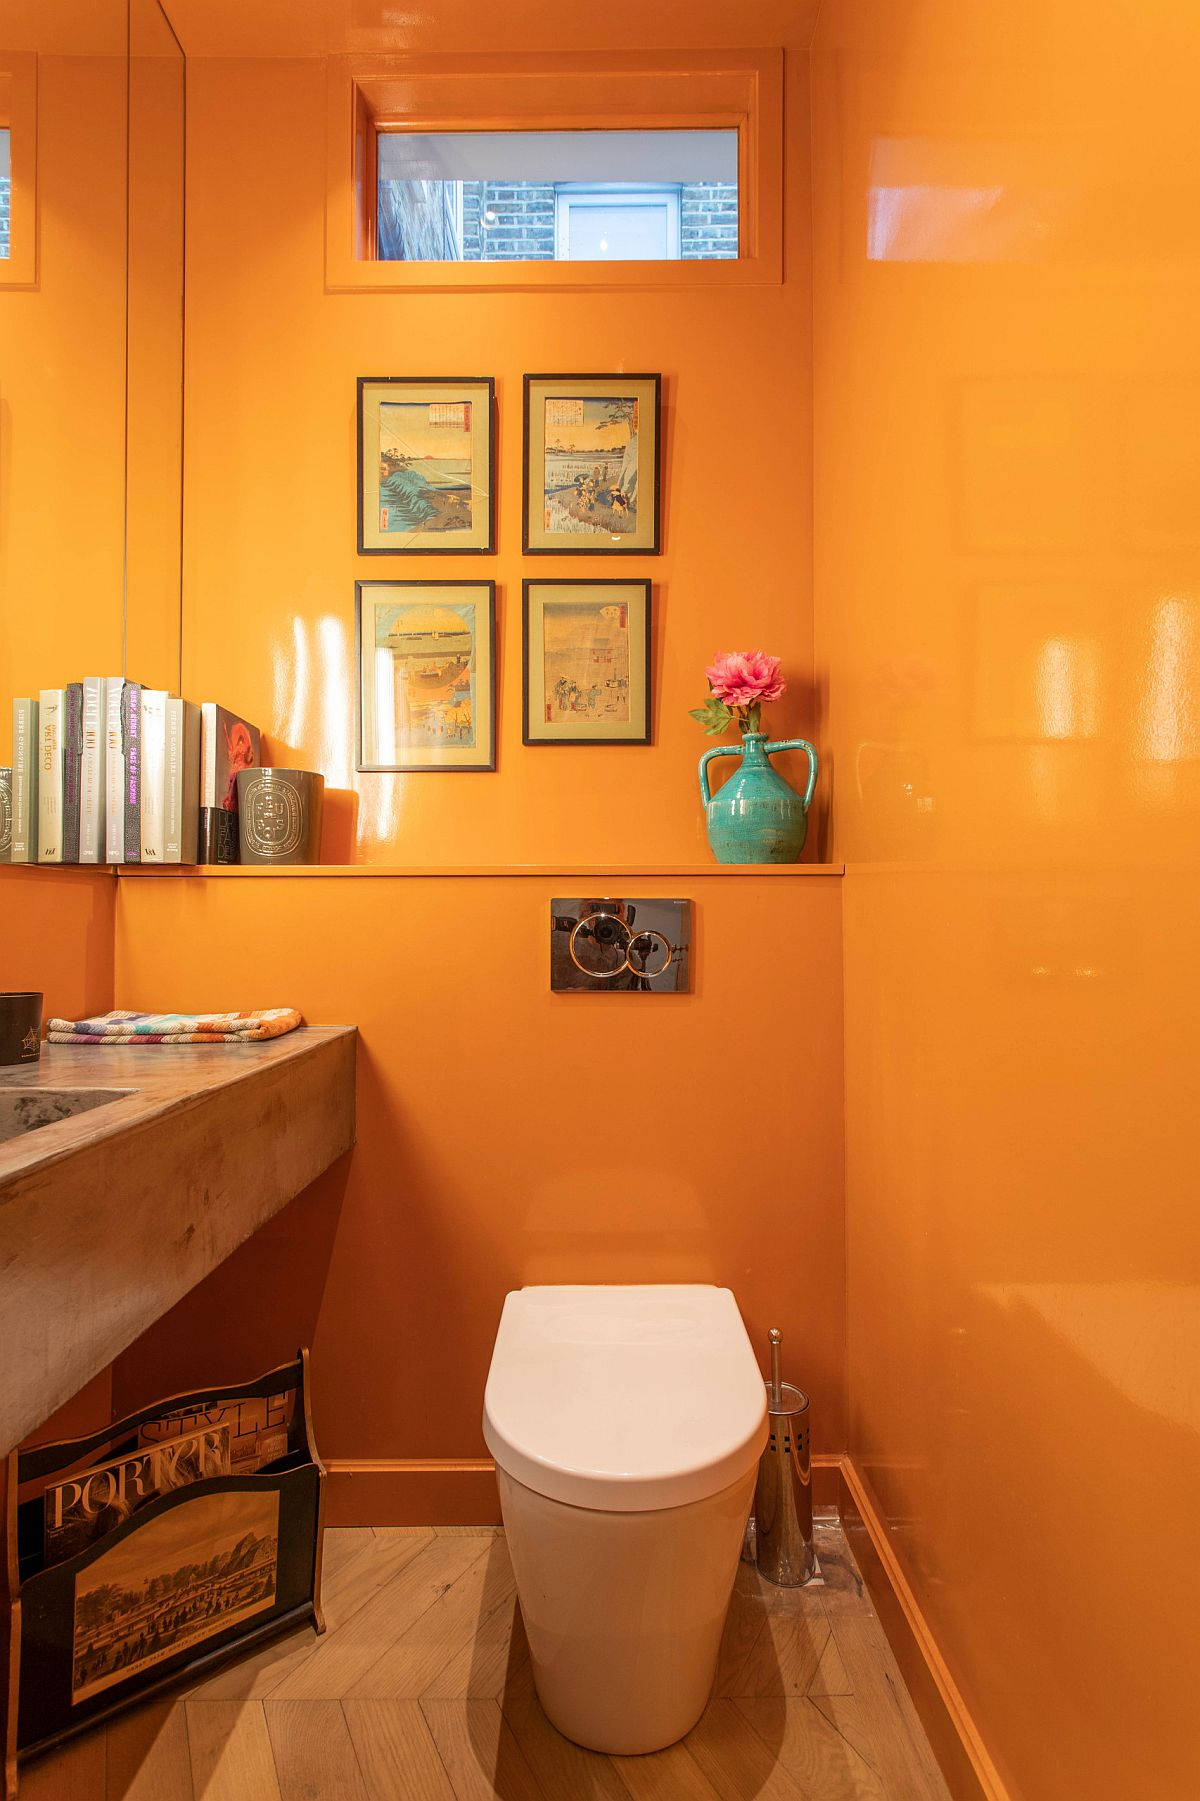 Glossy bathroom walls in orange with a wooden vanity create a light-filled and vivaciou setting